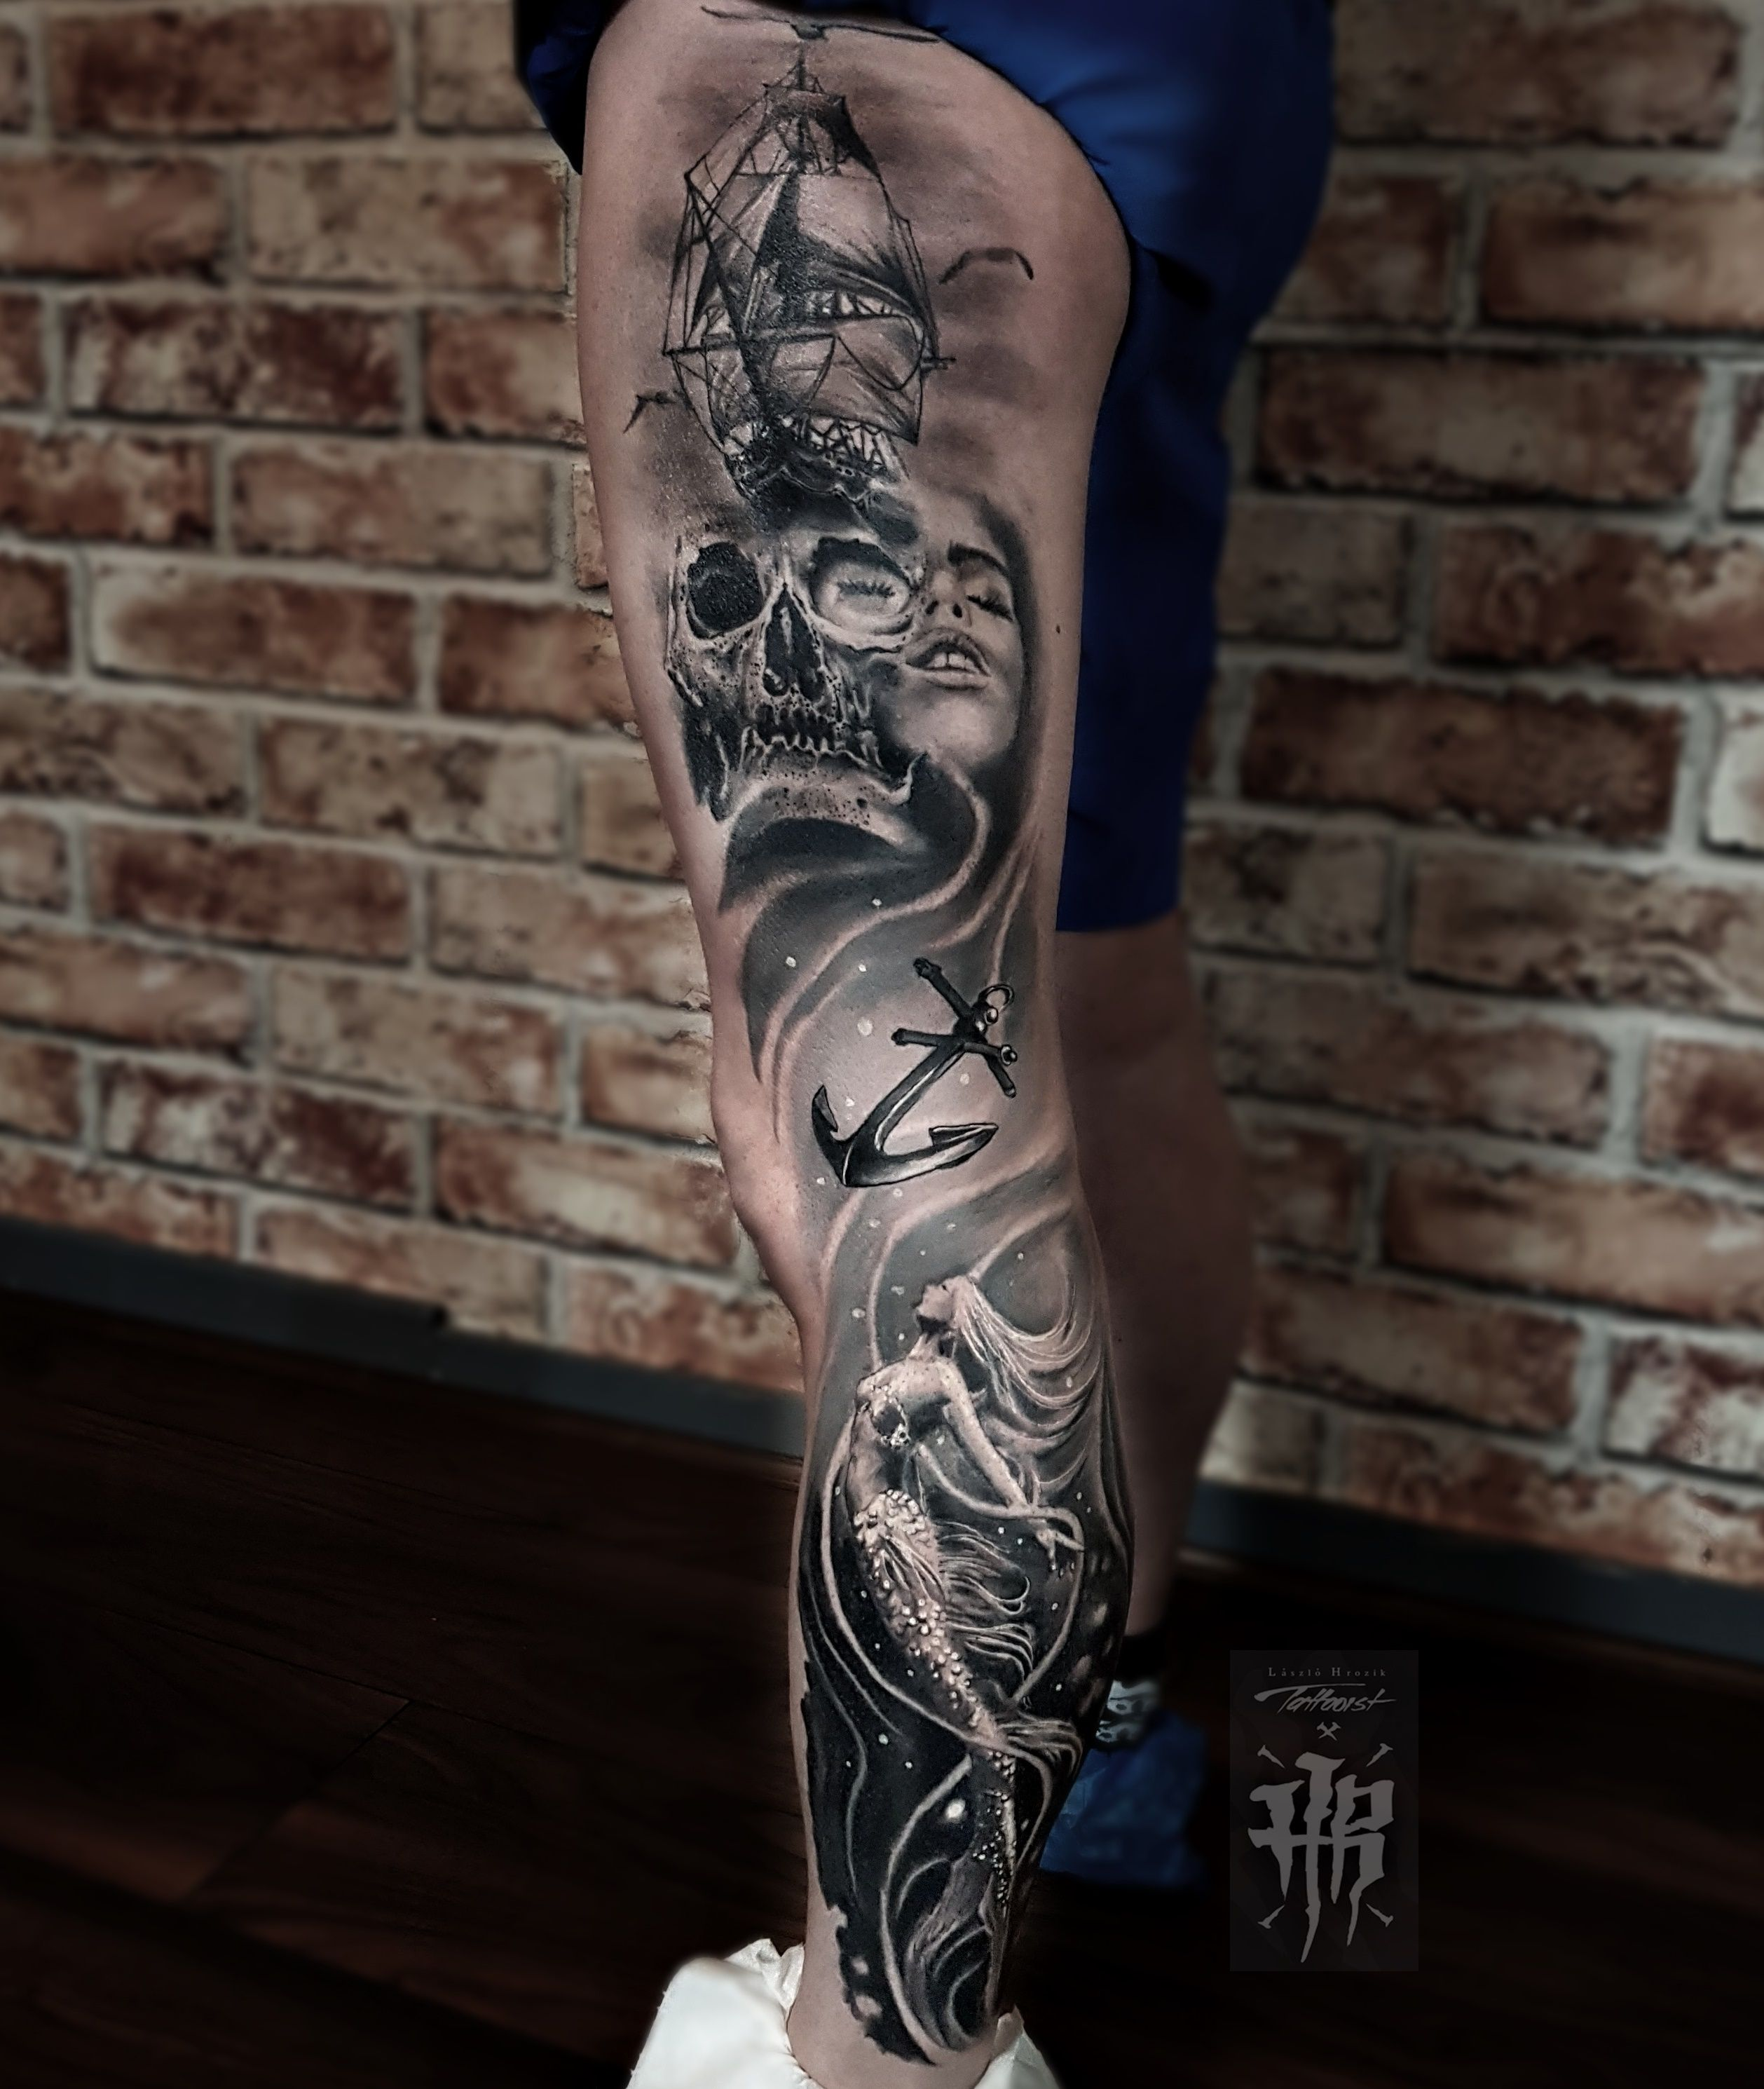 LASZLO HROZIKFull leg tattoo men Leg tattoo men, Full